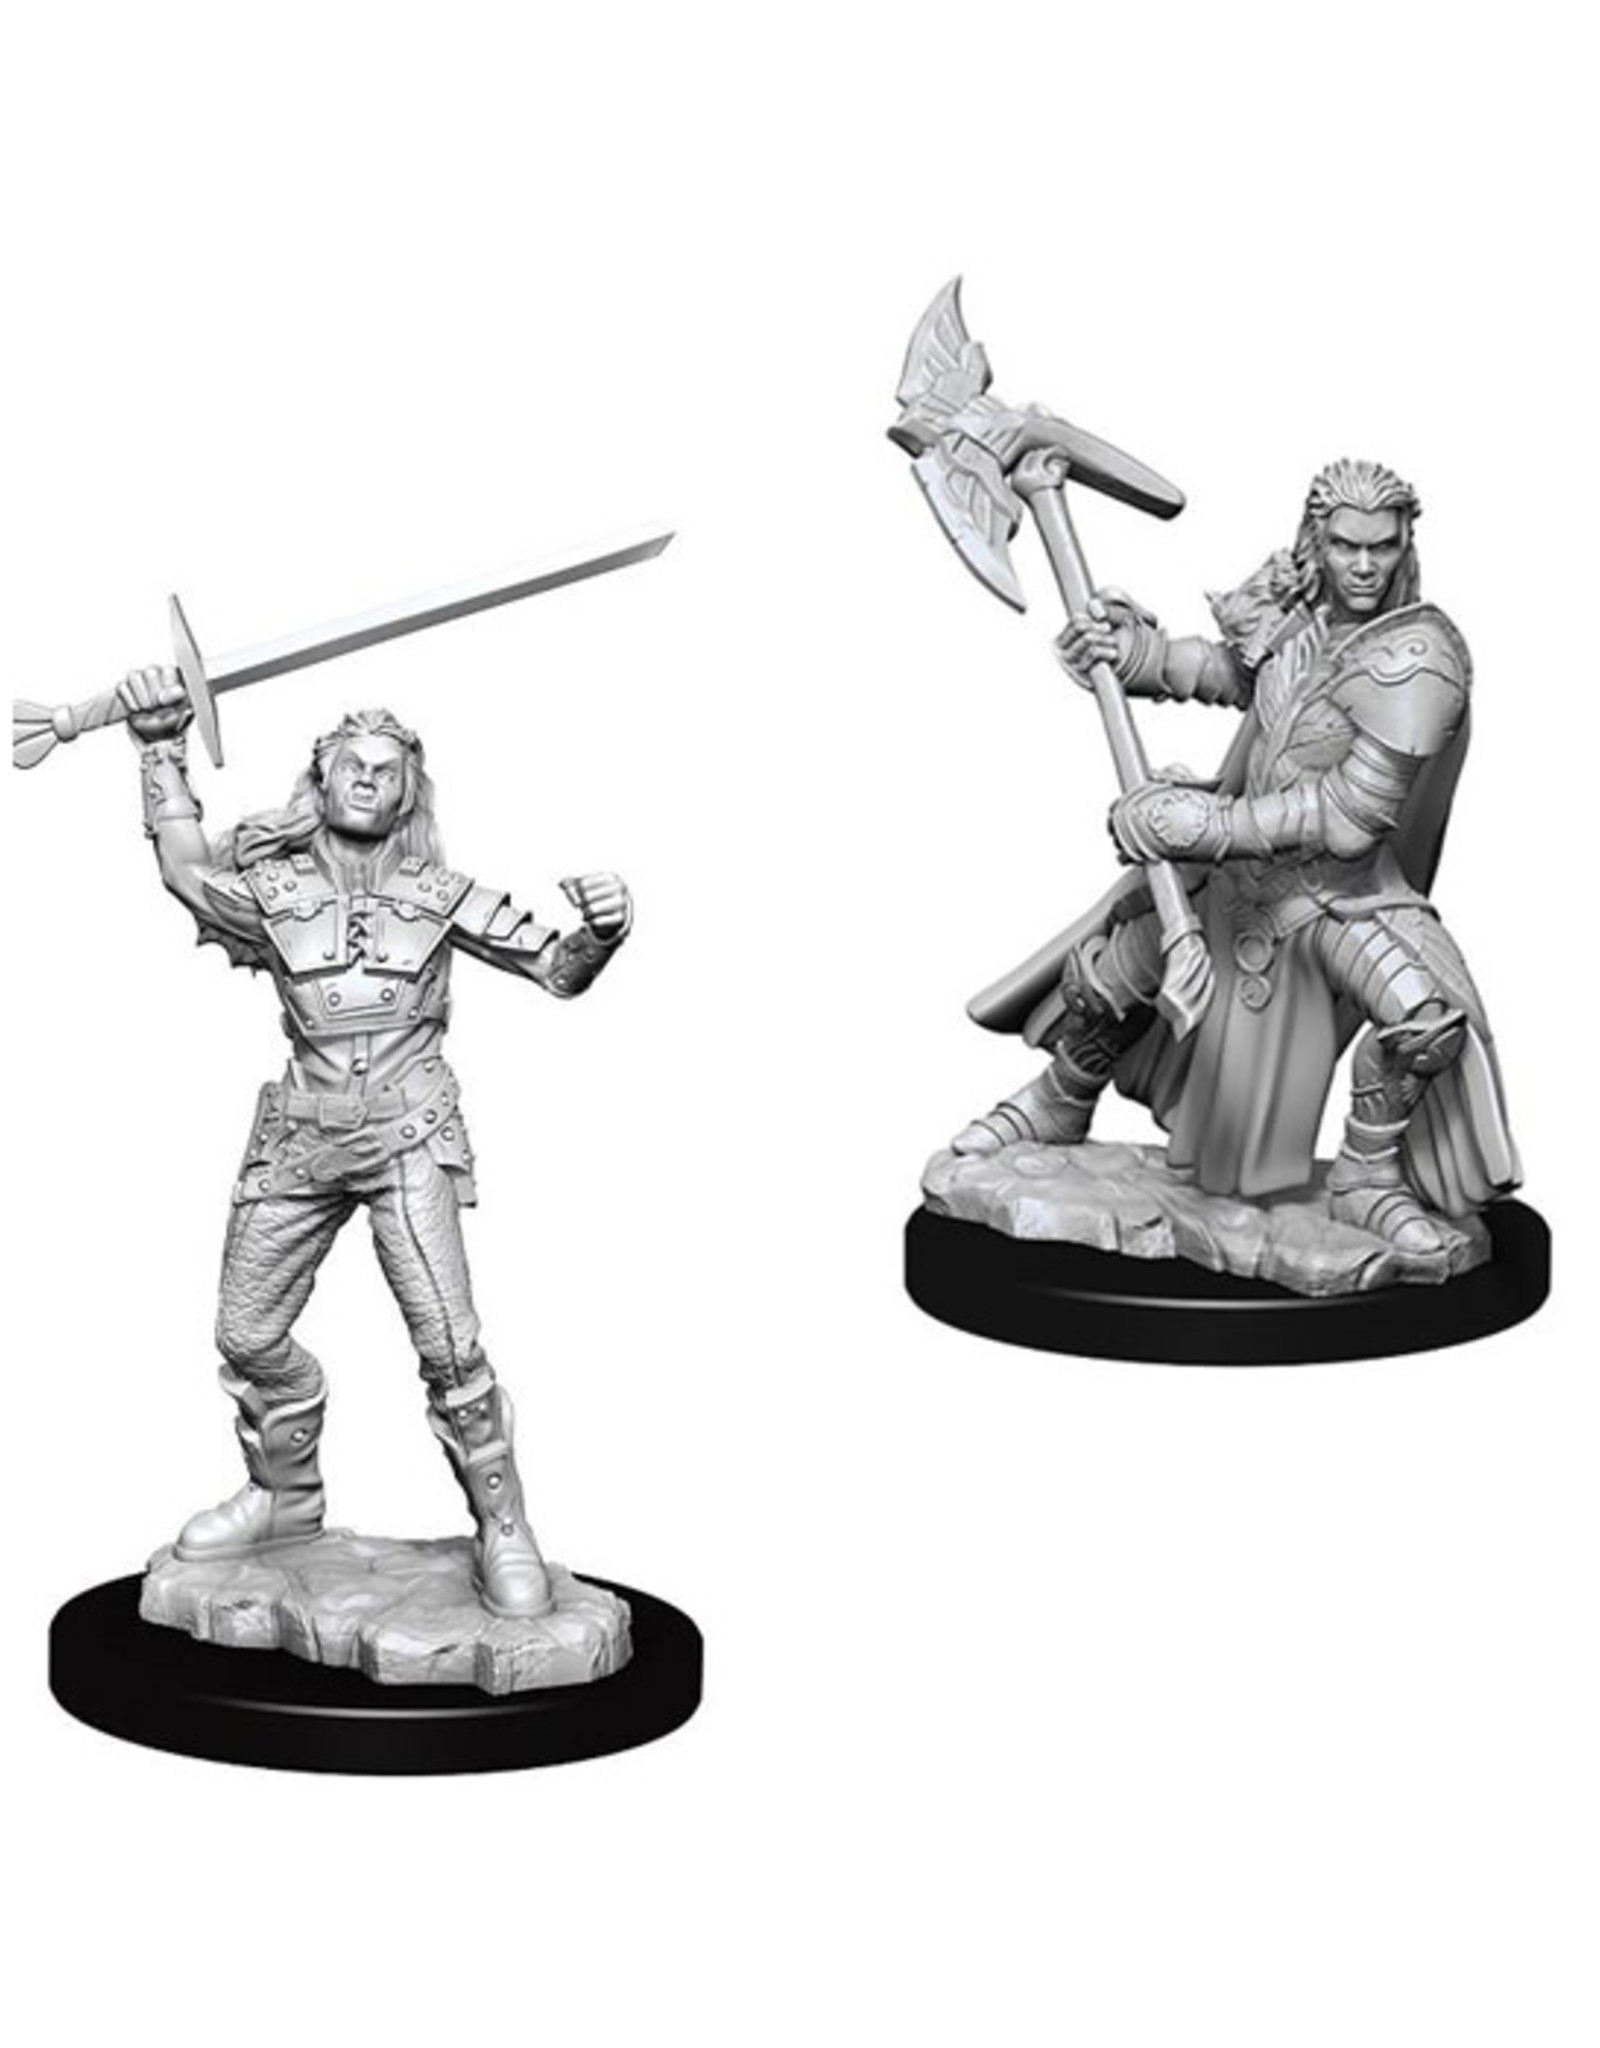 Dungeons & Dragons Dungeons & Dragons: Nolzur's - Half-Orc Female Fighter